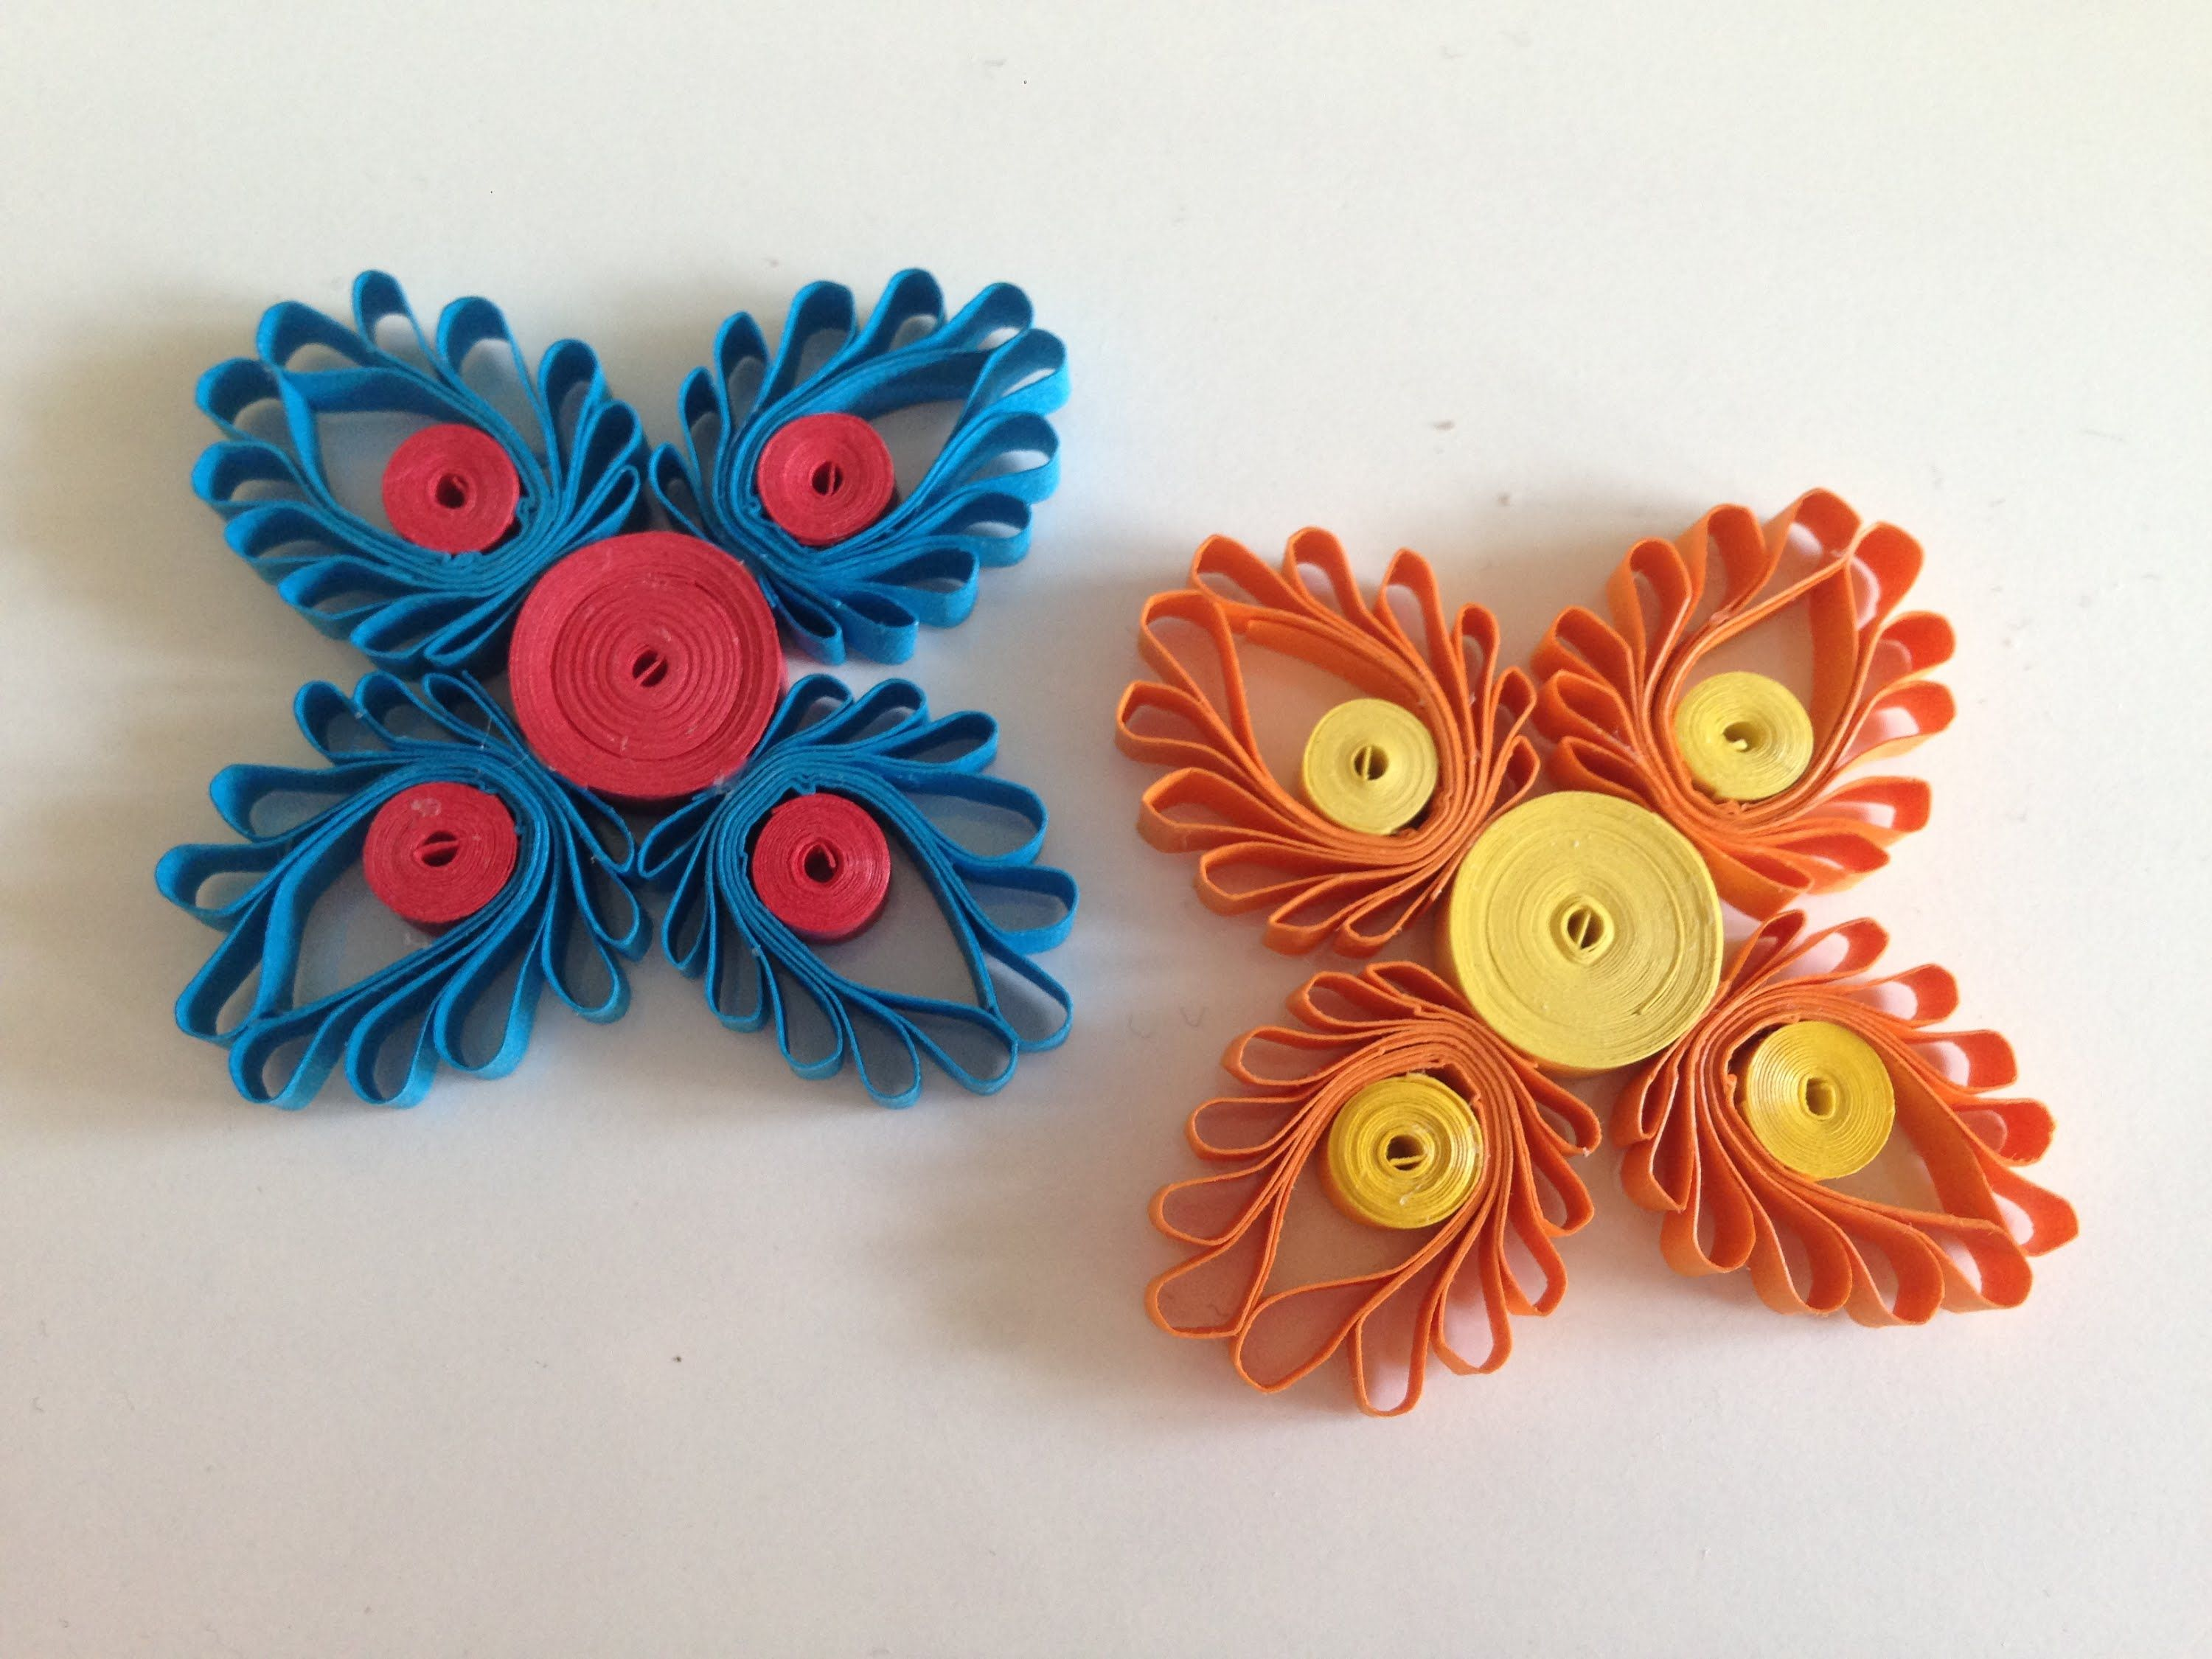 Quilling Flowers with a hair comb | Quilling | Pinterest | Quilling ... for quilling flowers using comb tutorial  242xkb